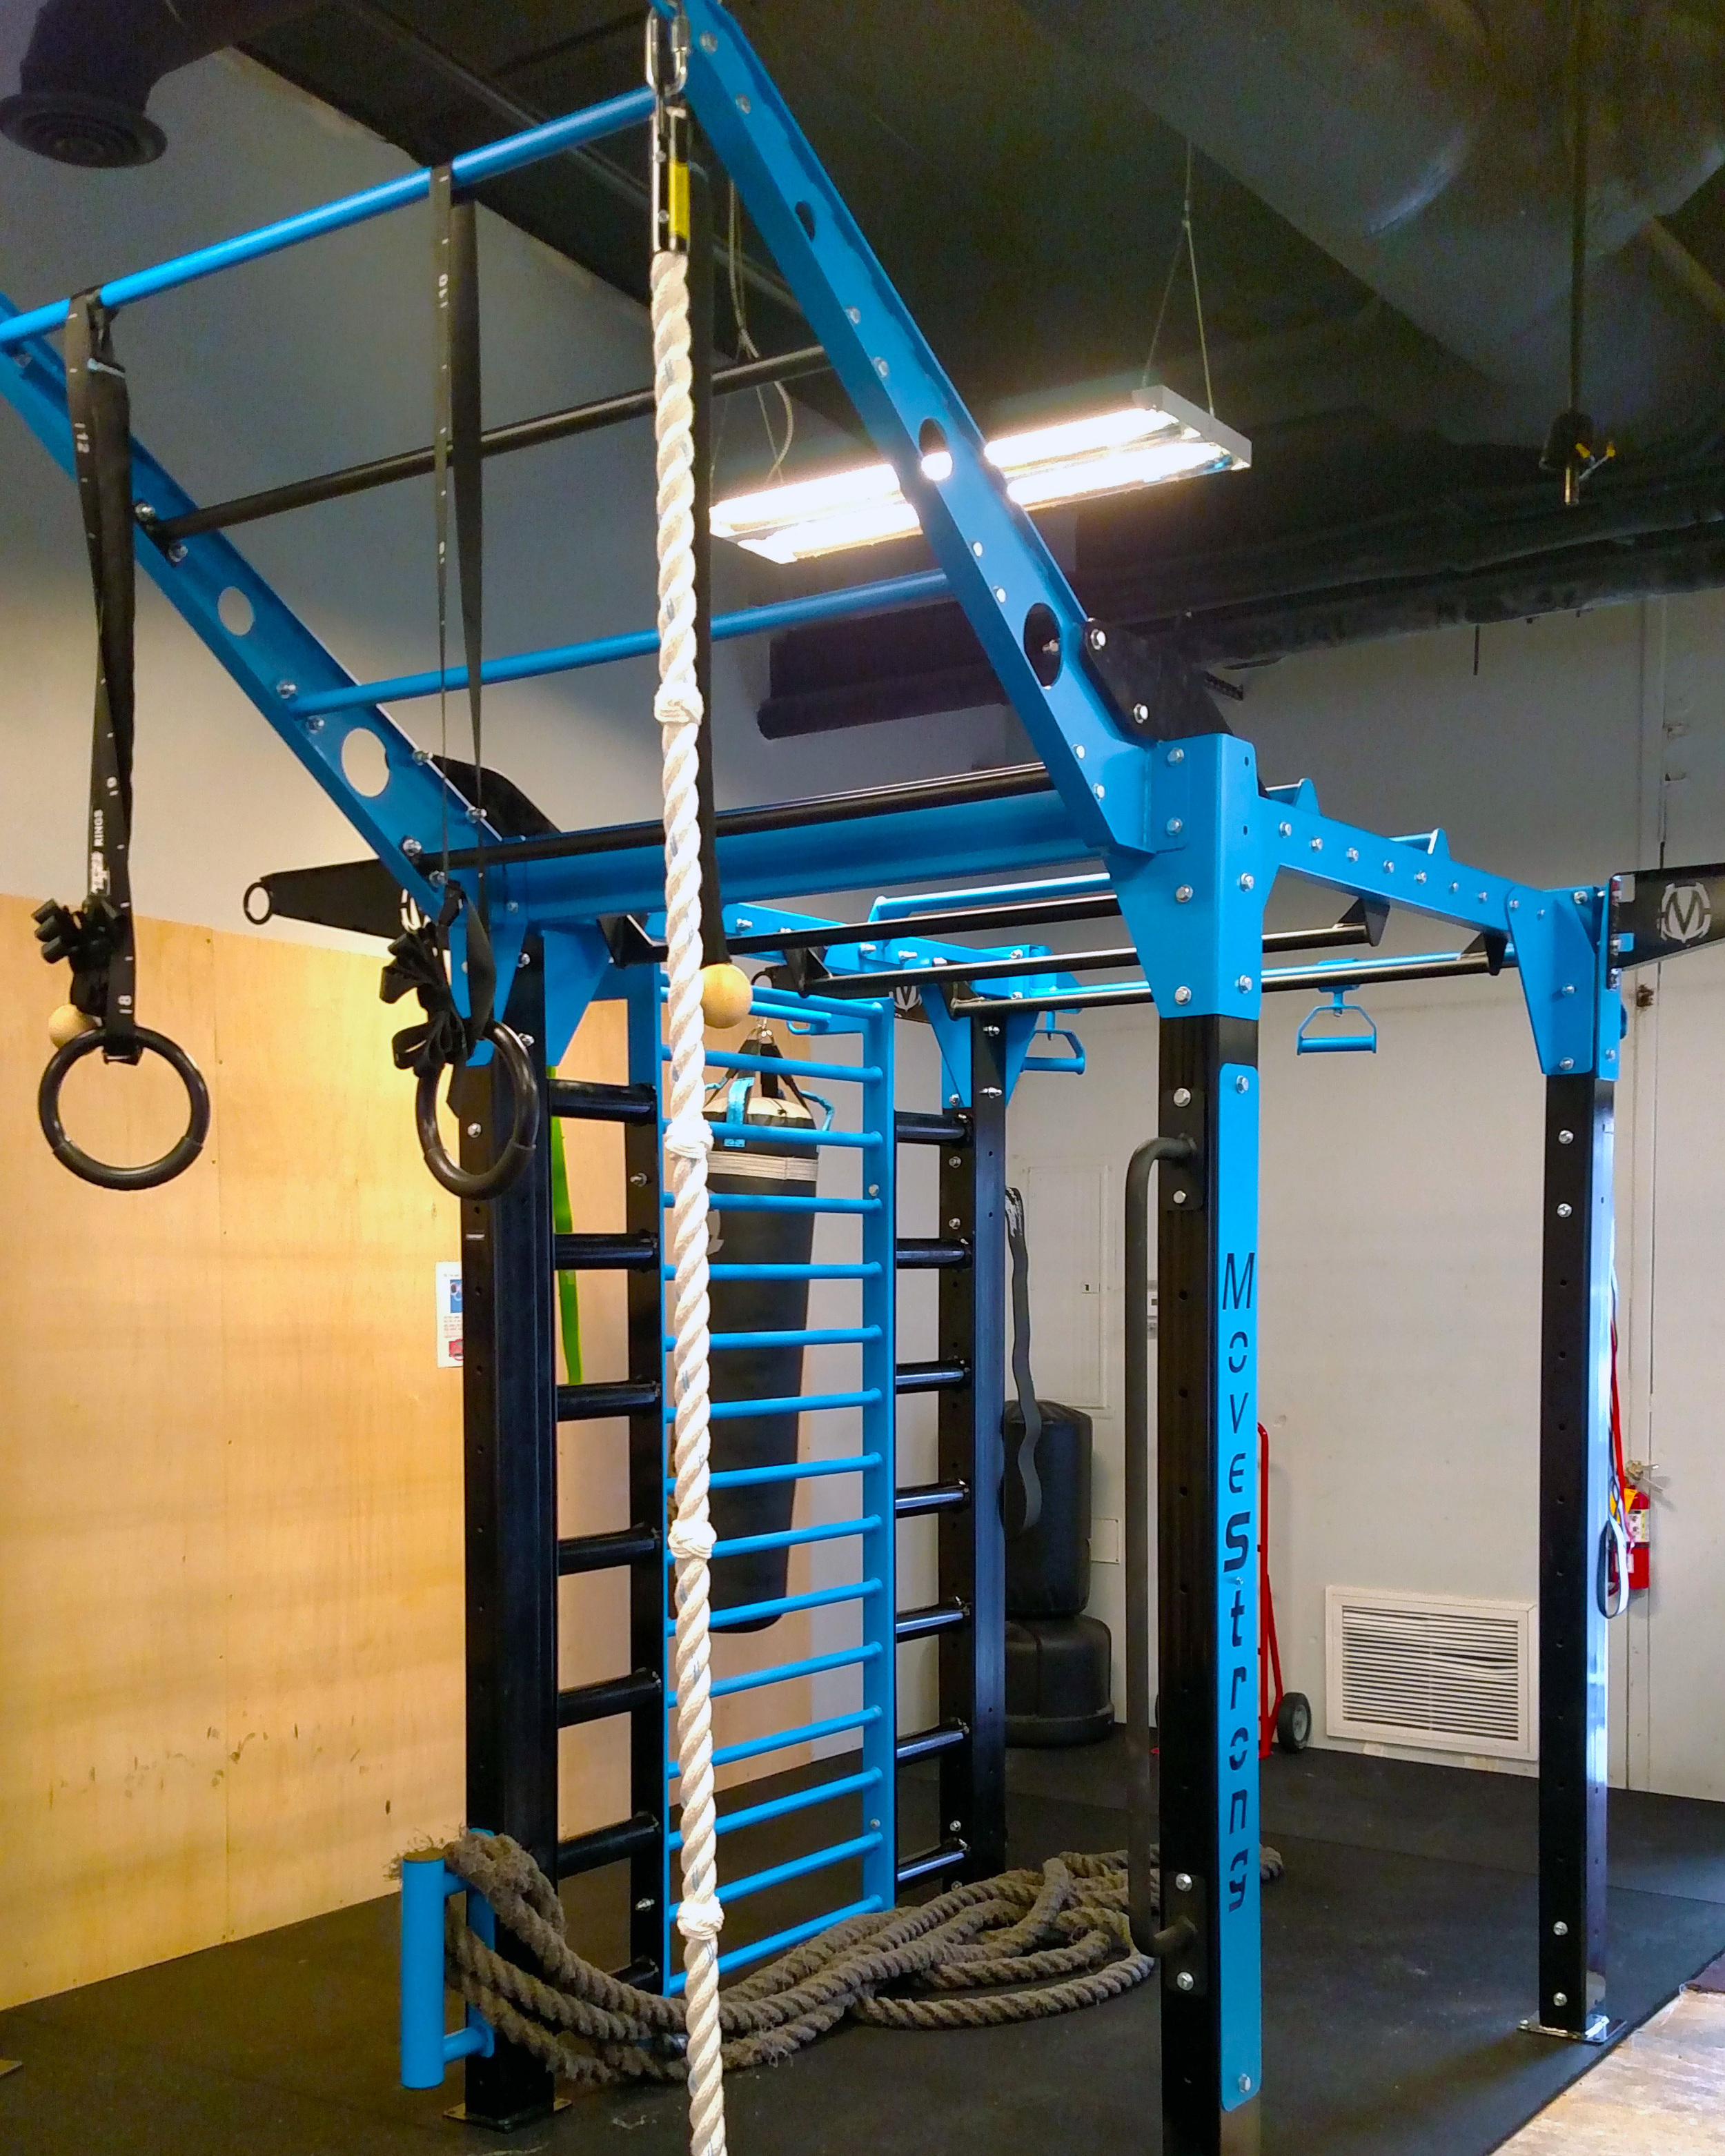 4 hour gym functional training fitness